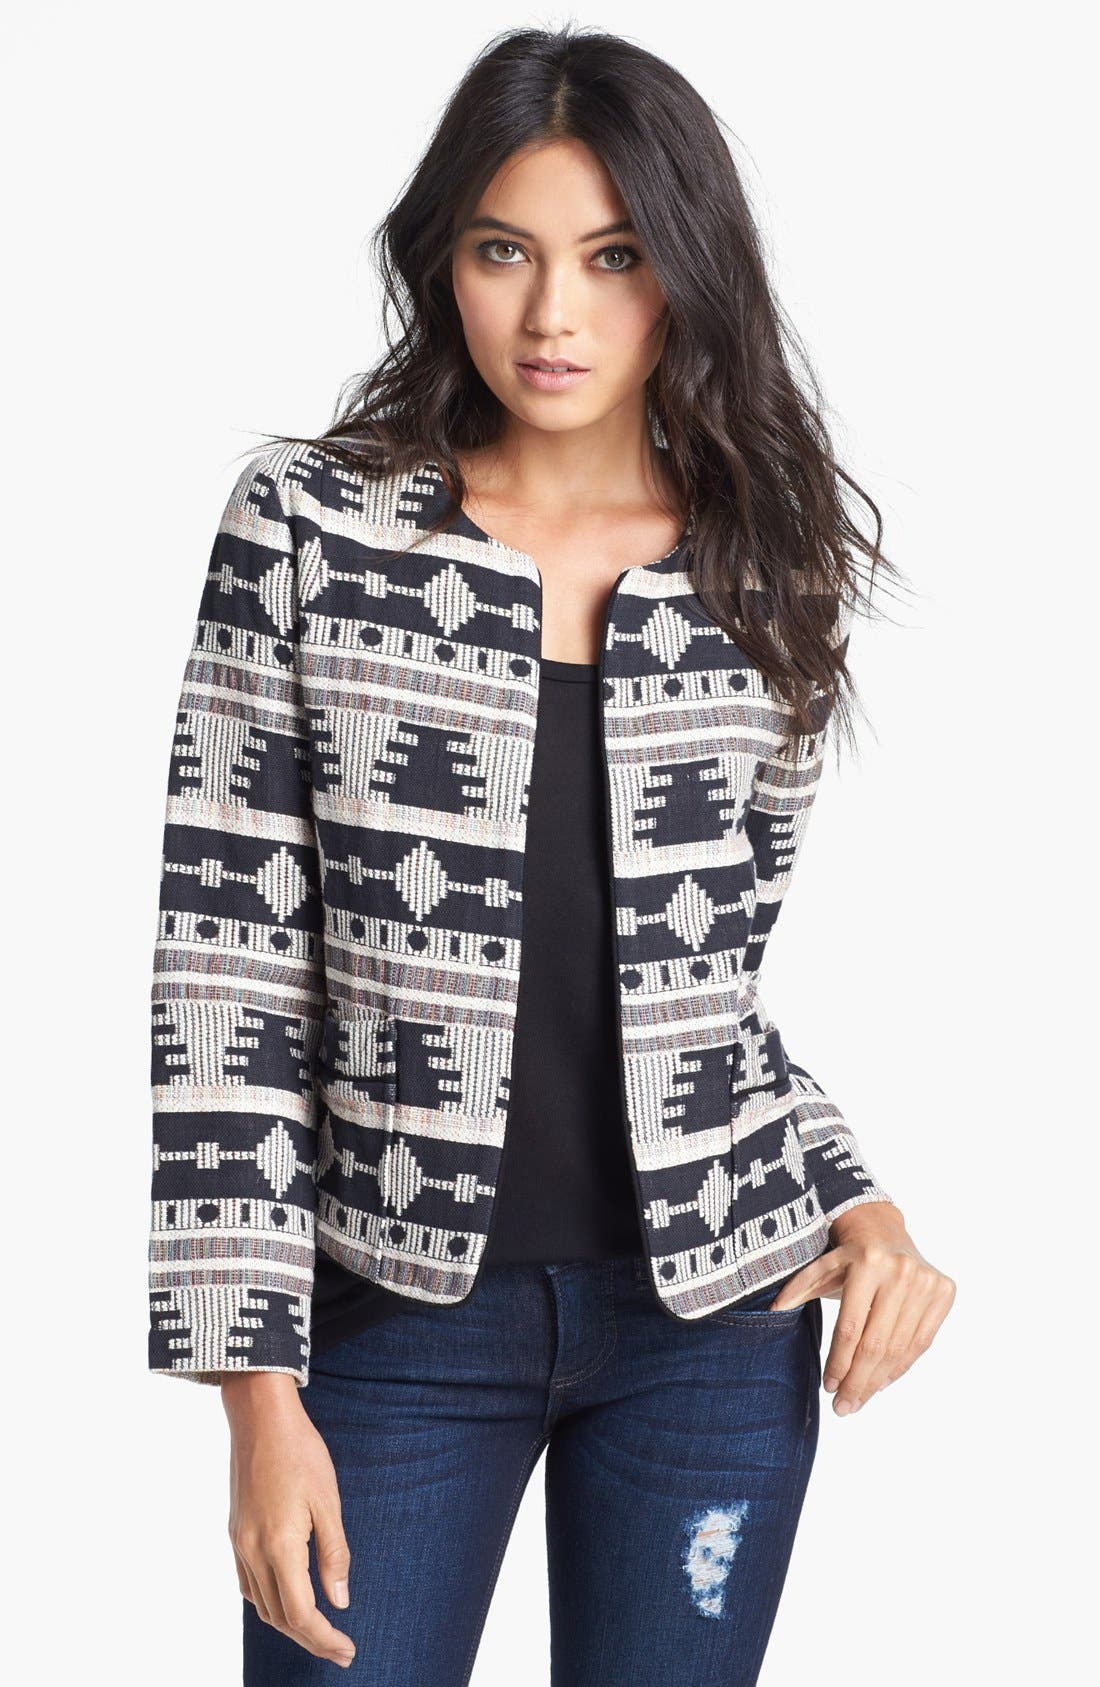 Alternate Image 1 Selected - Like Mynded 'Tribal' Pattern Jacket